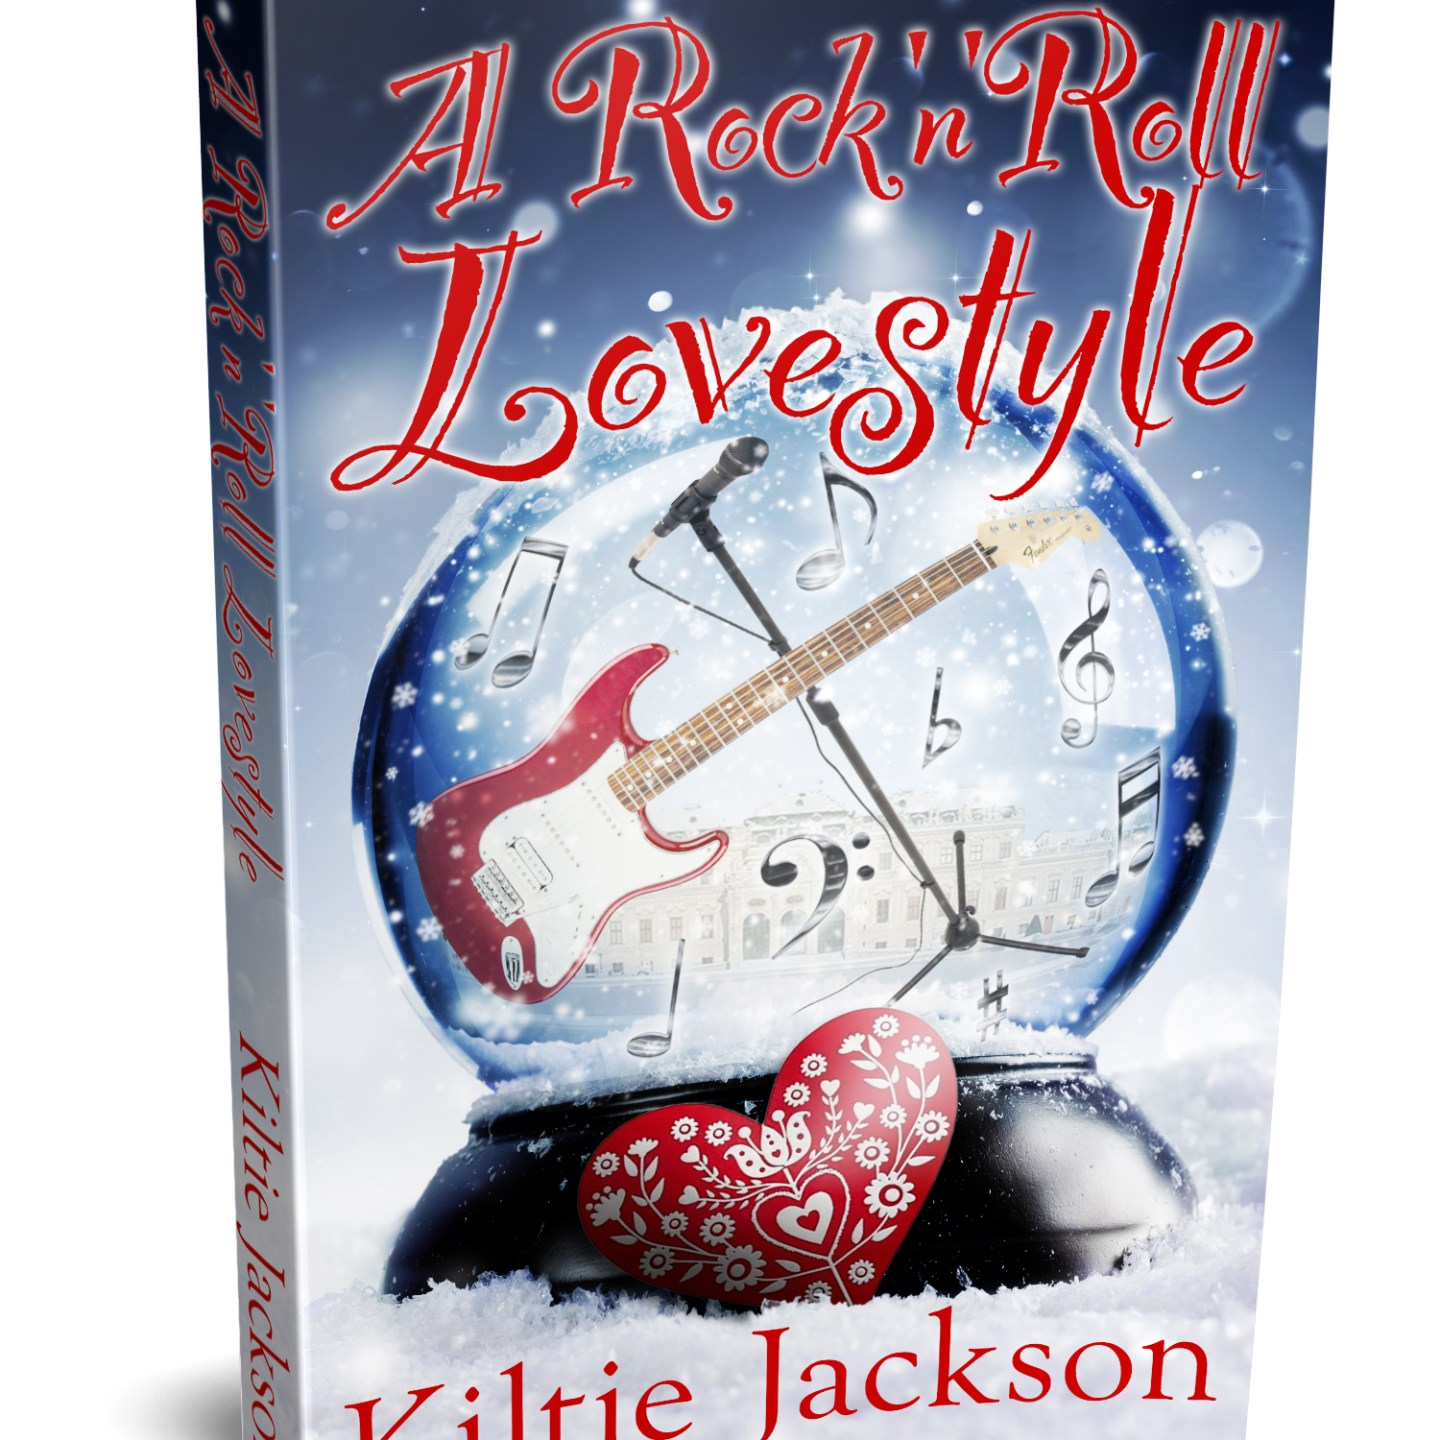 A Rock 'n' Roll Lovestyle by Kiltie Jackson